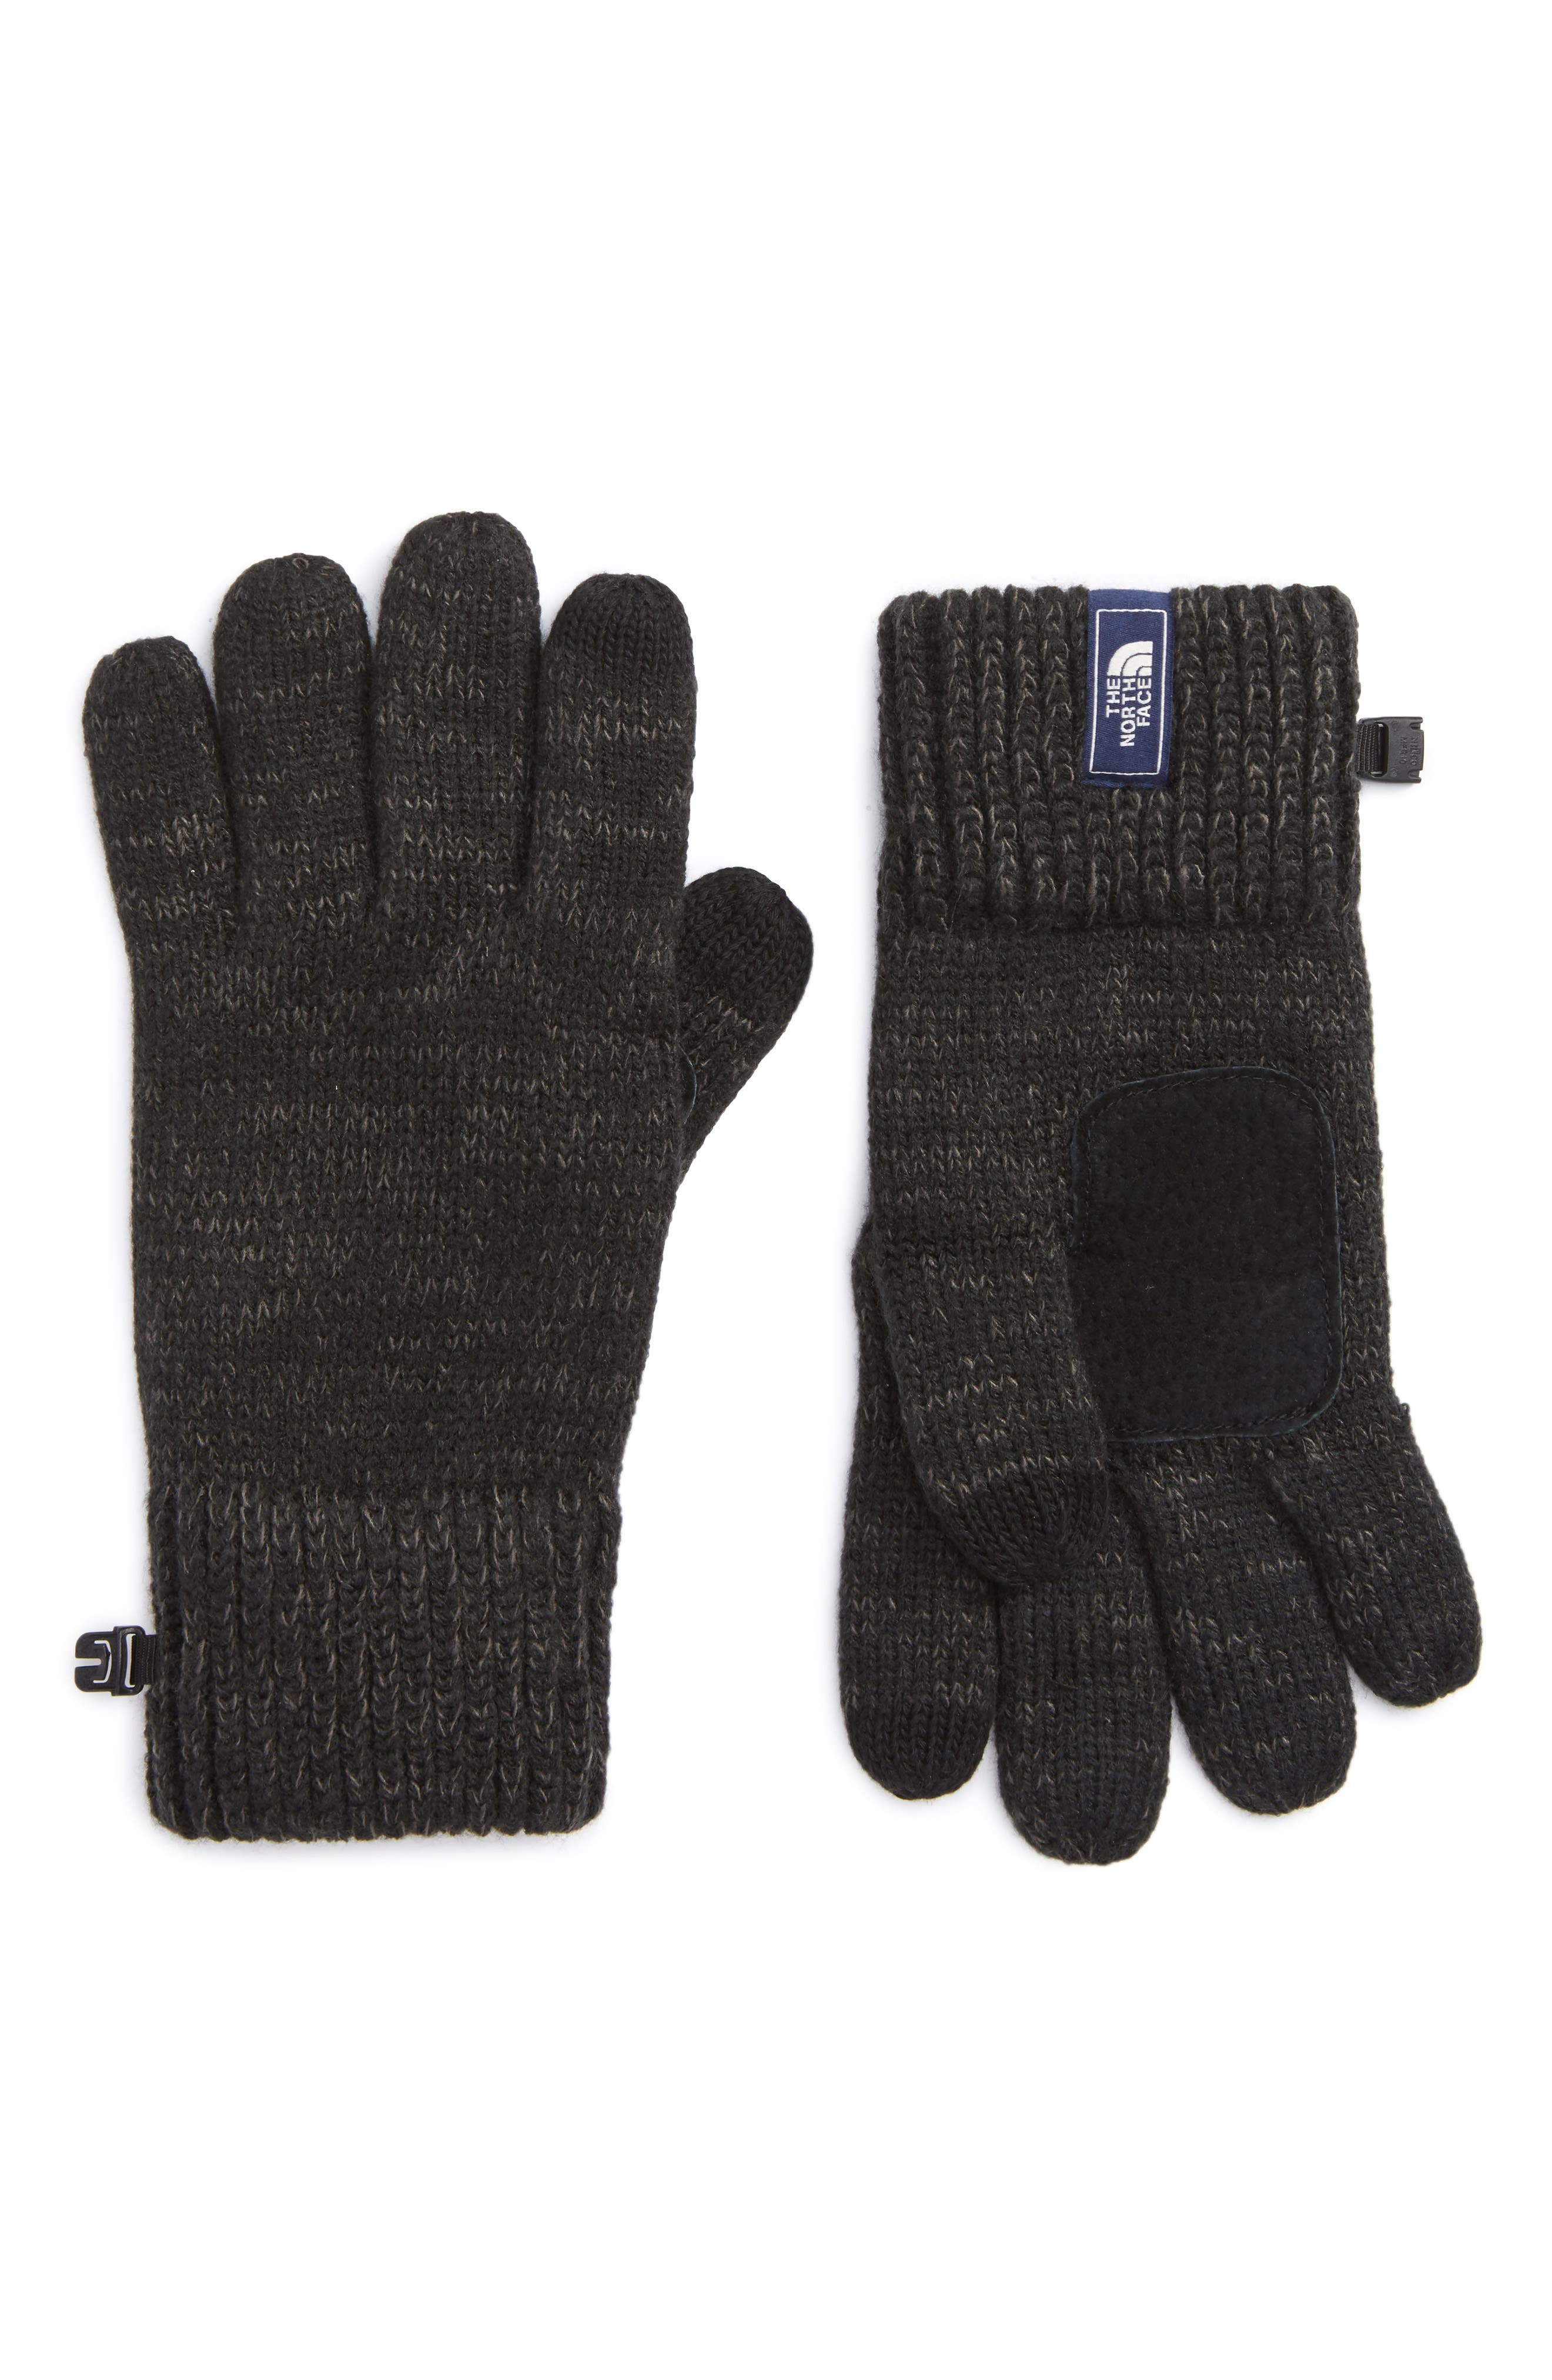 THE NORTH FACE, Etip Salty Dog Knit Tech Gloves, Main thumbnail 1, color, 001